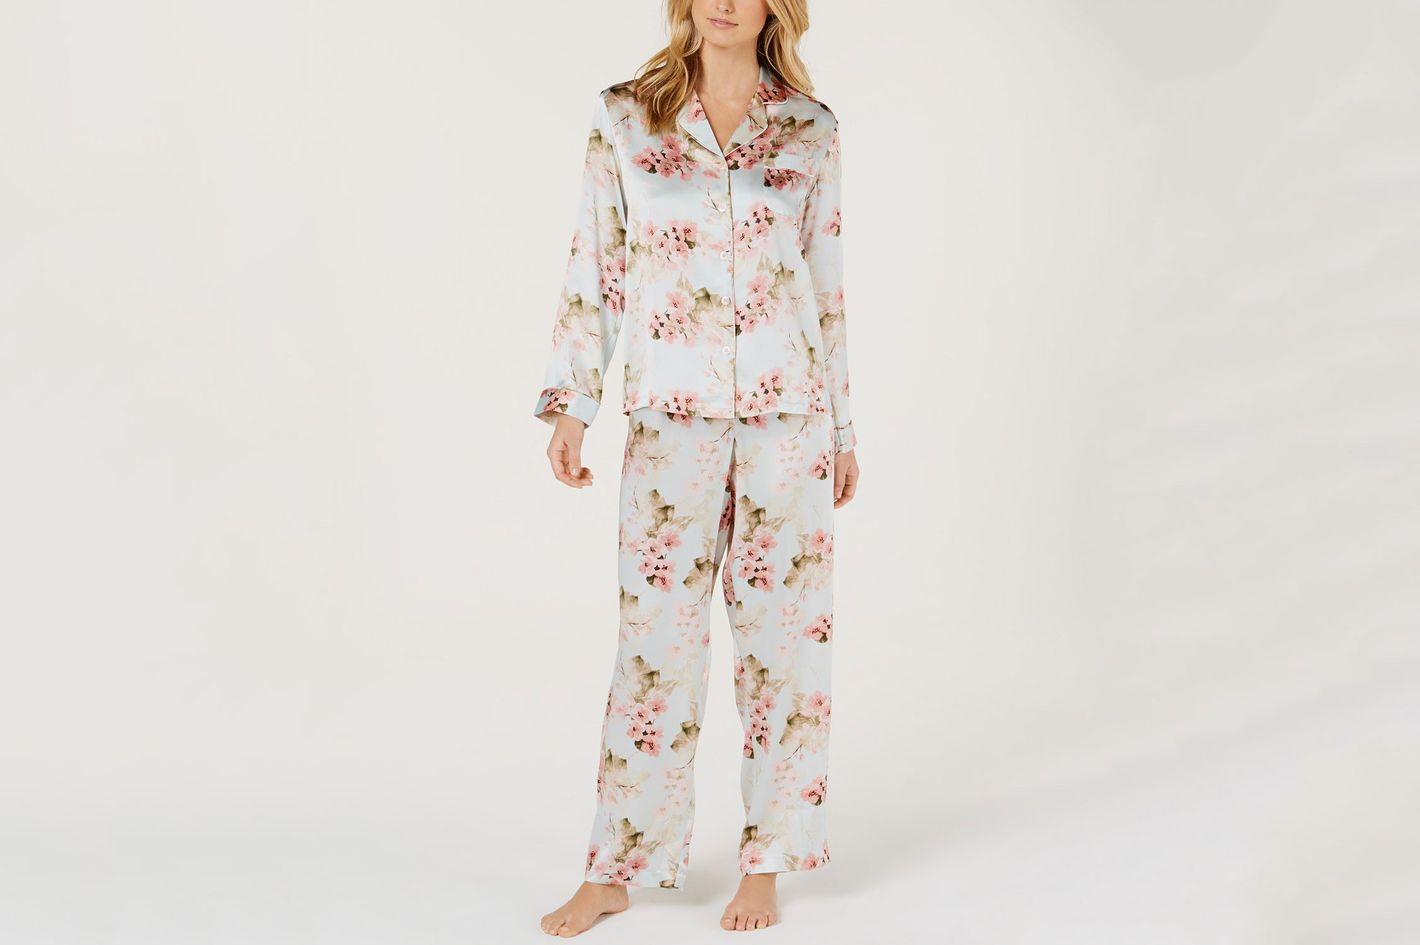 26 Best Silk Pajamas for Women 2018 4b424c46b